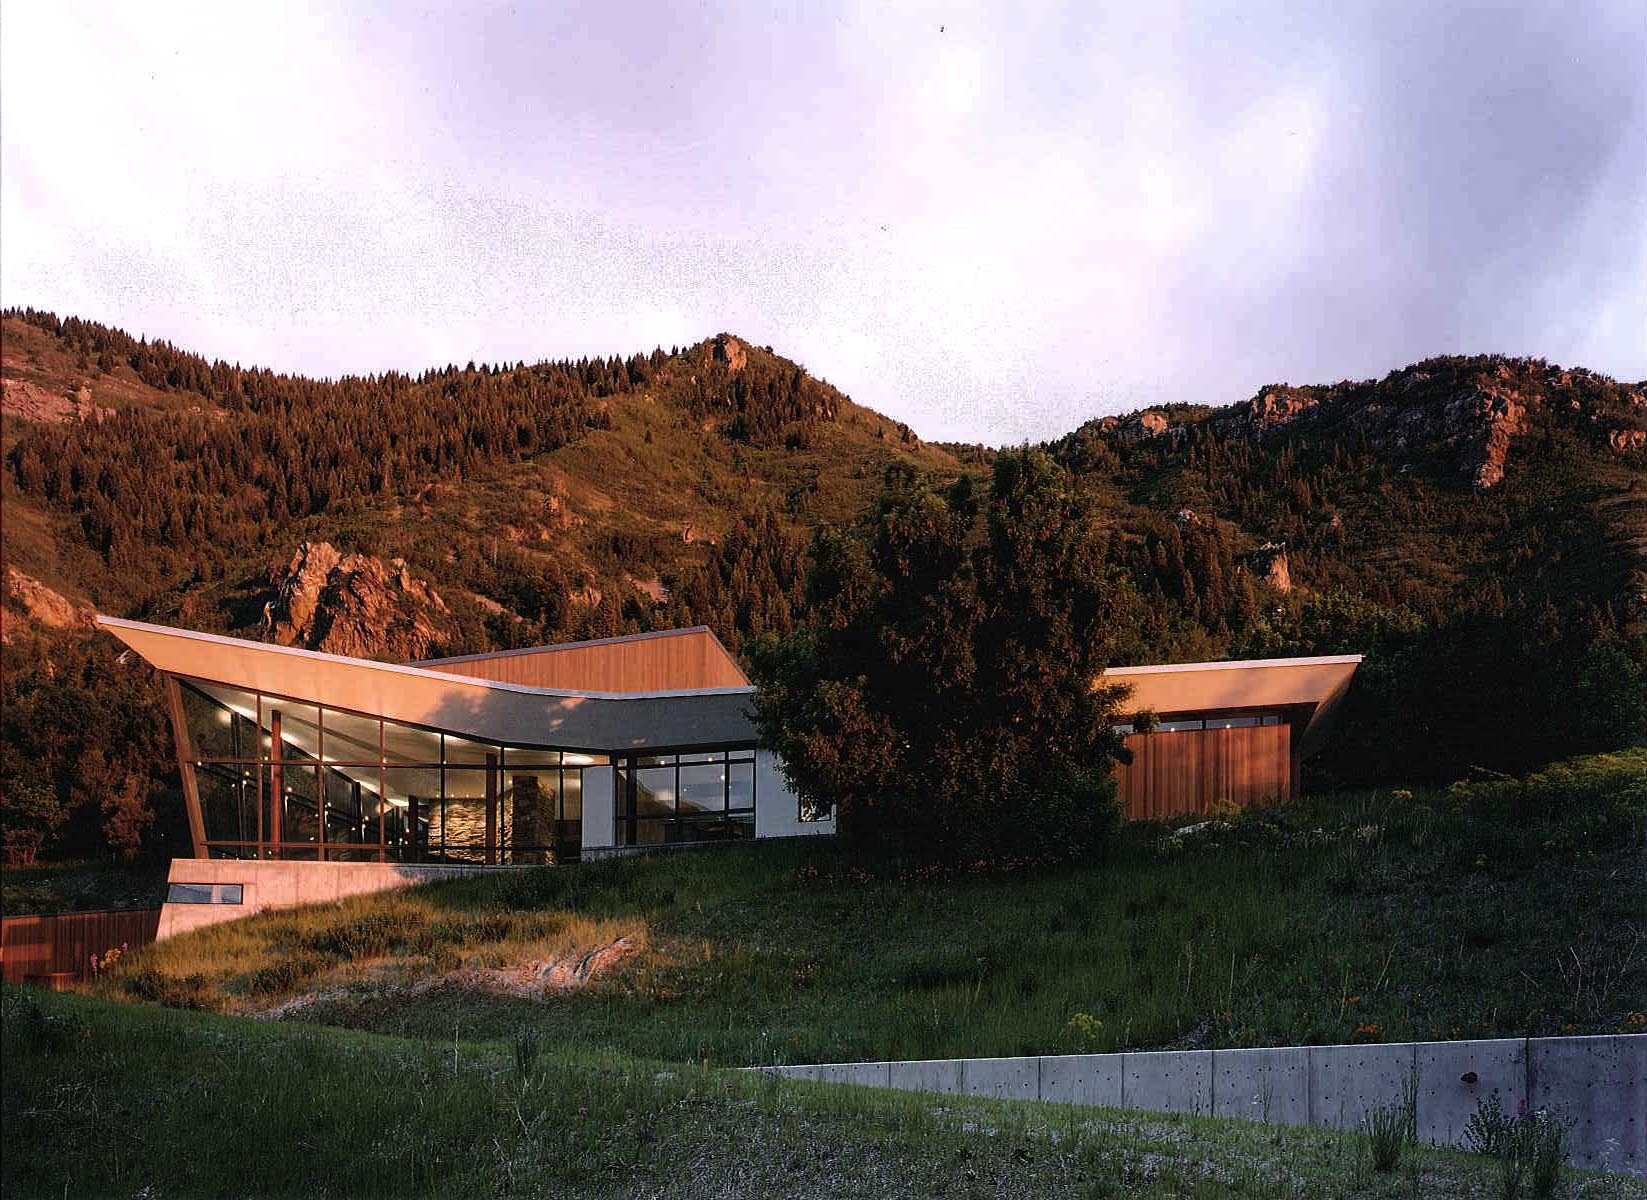 001_Canyon_house.jpg